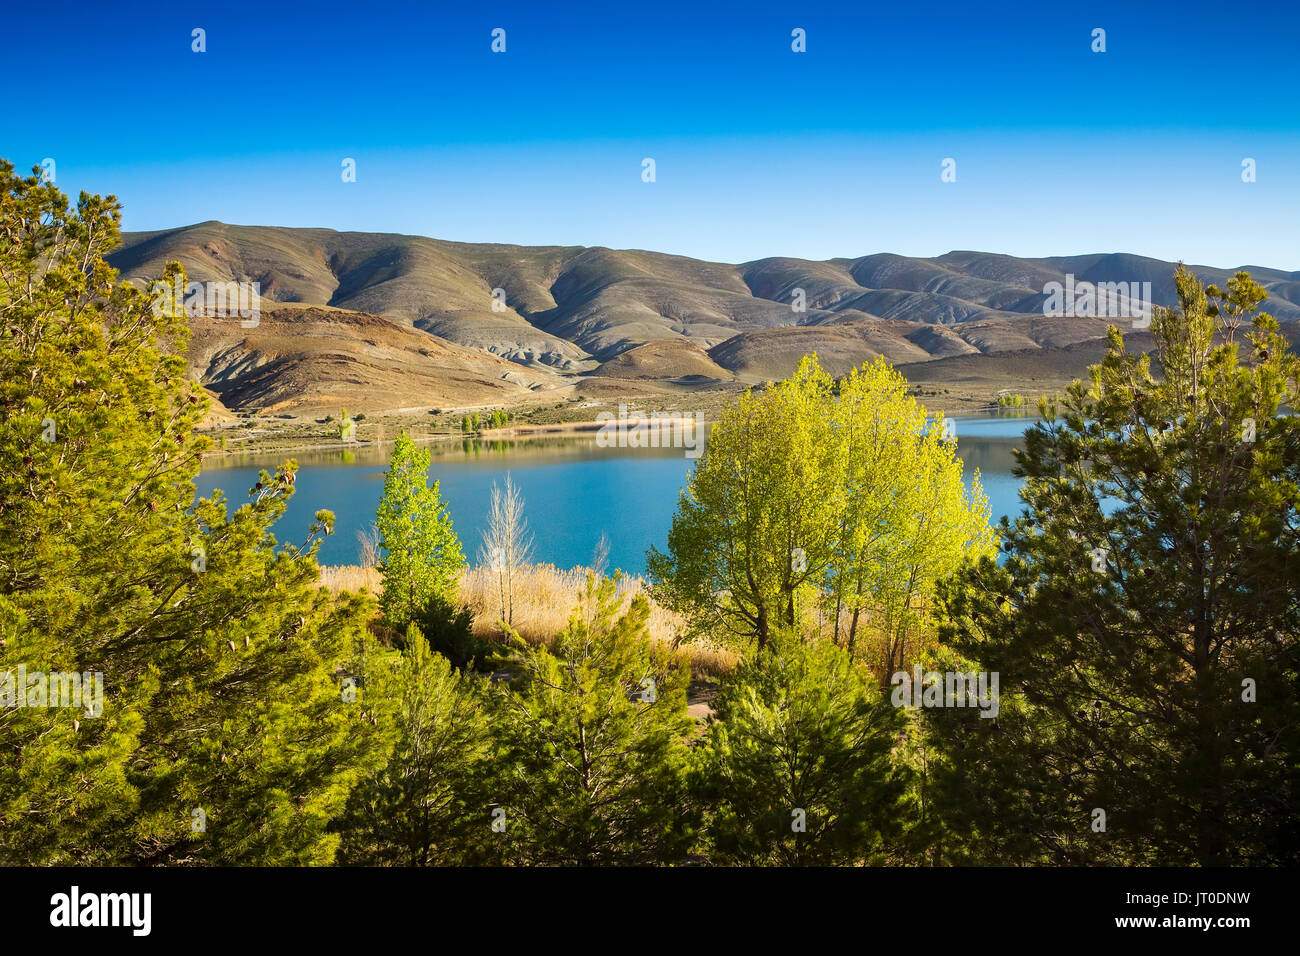 Blue water lake and vegetation. High Atlas. Morocco, Maghreb North Africa - Stock Image